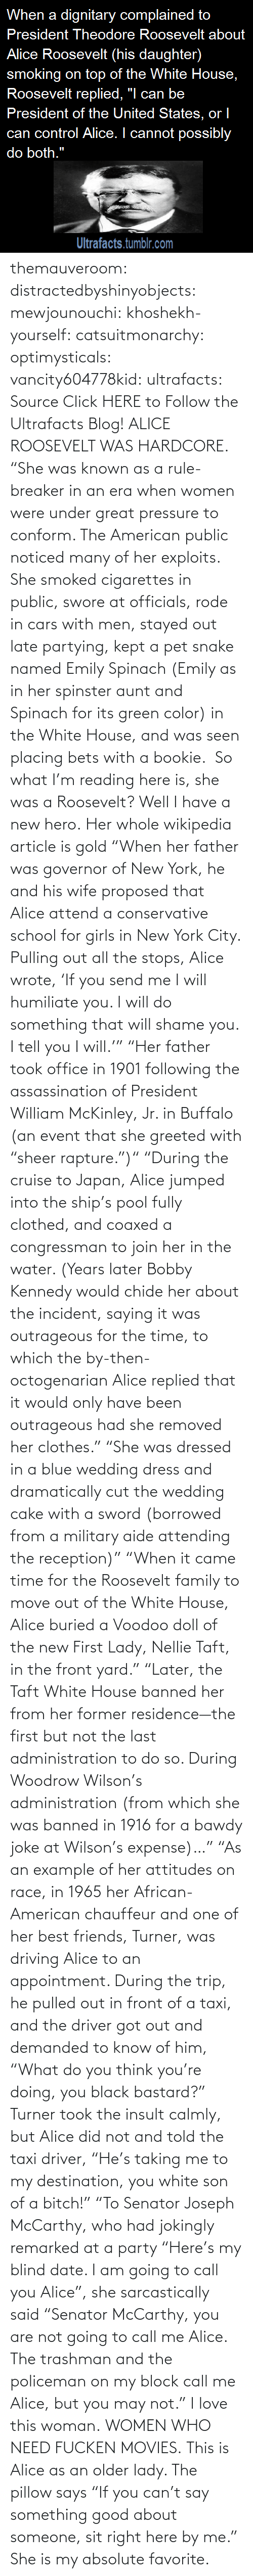 "Date: themauveroom: distractedbyshinyobjects:  mewjounouchi:  khoshekh-yourself:  catsuitmonarchy:  optimysticals:  vancity604778kid:  ultrafacts:     Source Click HERE to Follow the Ultrafacts Blog!     ALICE ROOSEVELT WAS HARDCORE. ""She was known as a rule-breaker in an era when women were under great pressure to conform. The American public noticed many of her exploits. She smoked cigarettes in public, swore at officials, rode in cars with men, stayed out late partying, kept a pet snake named Emily Spinach (Emily as in her spinster aunt and Spinach for its green color) in the White House, and was seen placing bets with a bookie.    So what I'm reading here is, she was a Roosevelt?  Well I have a new hero.  Her whole wikipedia article is gold ""When her father was governor of New York, he and his wife proposed that Alice attend a conservative school for girls in New York City. Pulling out all the stops, Alice wrote, 'If you send me I will humiliate you. I will do something that will shame you. I tell you I will.'"" ""Her father took office in 1901 following the assassination of President William McKinley, Jr. in Buffalo (an event that she greeted with ""sheer rapture."")"" ""During the cruise to Japan, Alice jumped into the ship's pool fully clothed, and coaxed a congressman to join her in the water. (Years later Bobby Kennedy would chide her about the incident, saying it was outrageous for the time, to which the by-then-octogenarian Alice replied that it would only have been outrageous had she removed her clothes."" ""She was dressed in a blue wedding dress and dramatically cut the wedding cake with a sword (borrowed from a military aide attending the reception)"" ""When it came time for the Roosevelt family to move out of the White House, Alice buried a Voodoo doll of the new First Lady, Nellie Taft, in the front yard."" ""Later, the Taft White House banned her from her former residence—the first but not the last administration to do so. During Woodrow Wilson's administration (from which she was banned in 1916 for a bawdy joke at Wilson's expense)…"" ""As an example of her attitudes on race, in 1965 her African-American chauffeur and one of her best friends, Turner, was driving Alice to an appointment. During the trip, he pulled out in front of a taxi, and the driver got out and demanded to know of him, ""What do you think you're doing, you black bastard?"" Turner took the insult calmly, but Alice did not and told the taxi driver, ""He's taking me to my destination, you white son of a bitch!"" ""To Senator Joseph McCarthy, who had jokingly remarked at a party ""Here's my blind date. I am going to call you Alice"", she sarcastically said ""Senator McCarthy, you are not going to call me Alice. The trashman and the policeman on my block call me Alice, but you may not.""  I love this woman.  WOMEN WHO NEED FUCKEN MOVIES.   This is Alice as an older lady. The pillow says ""If you can't say something good about someone, sit right here by me.""  She is my absolute favorite."